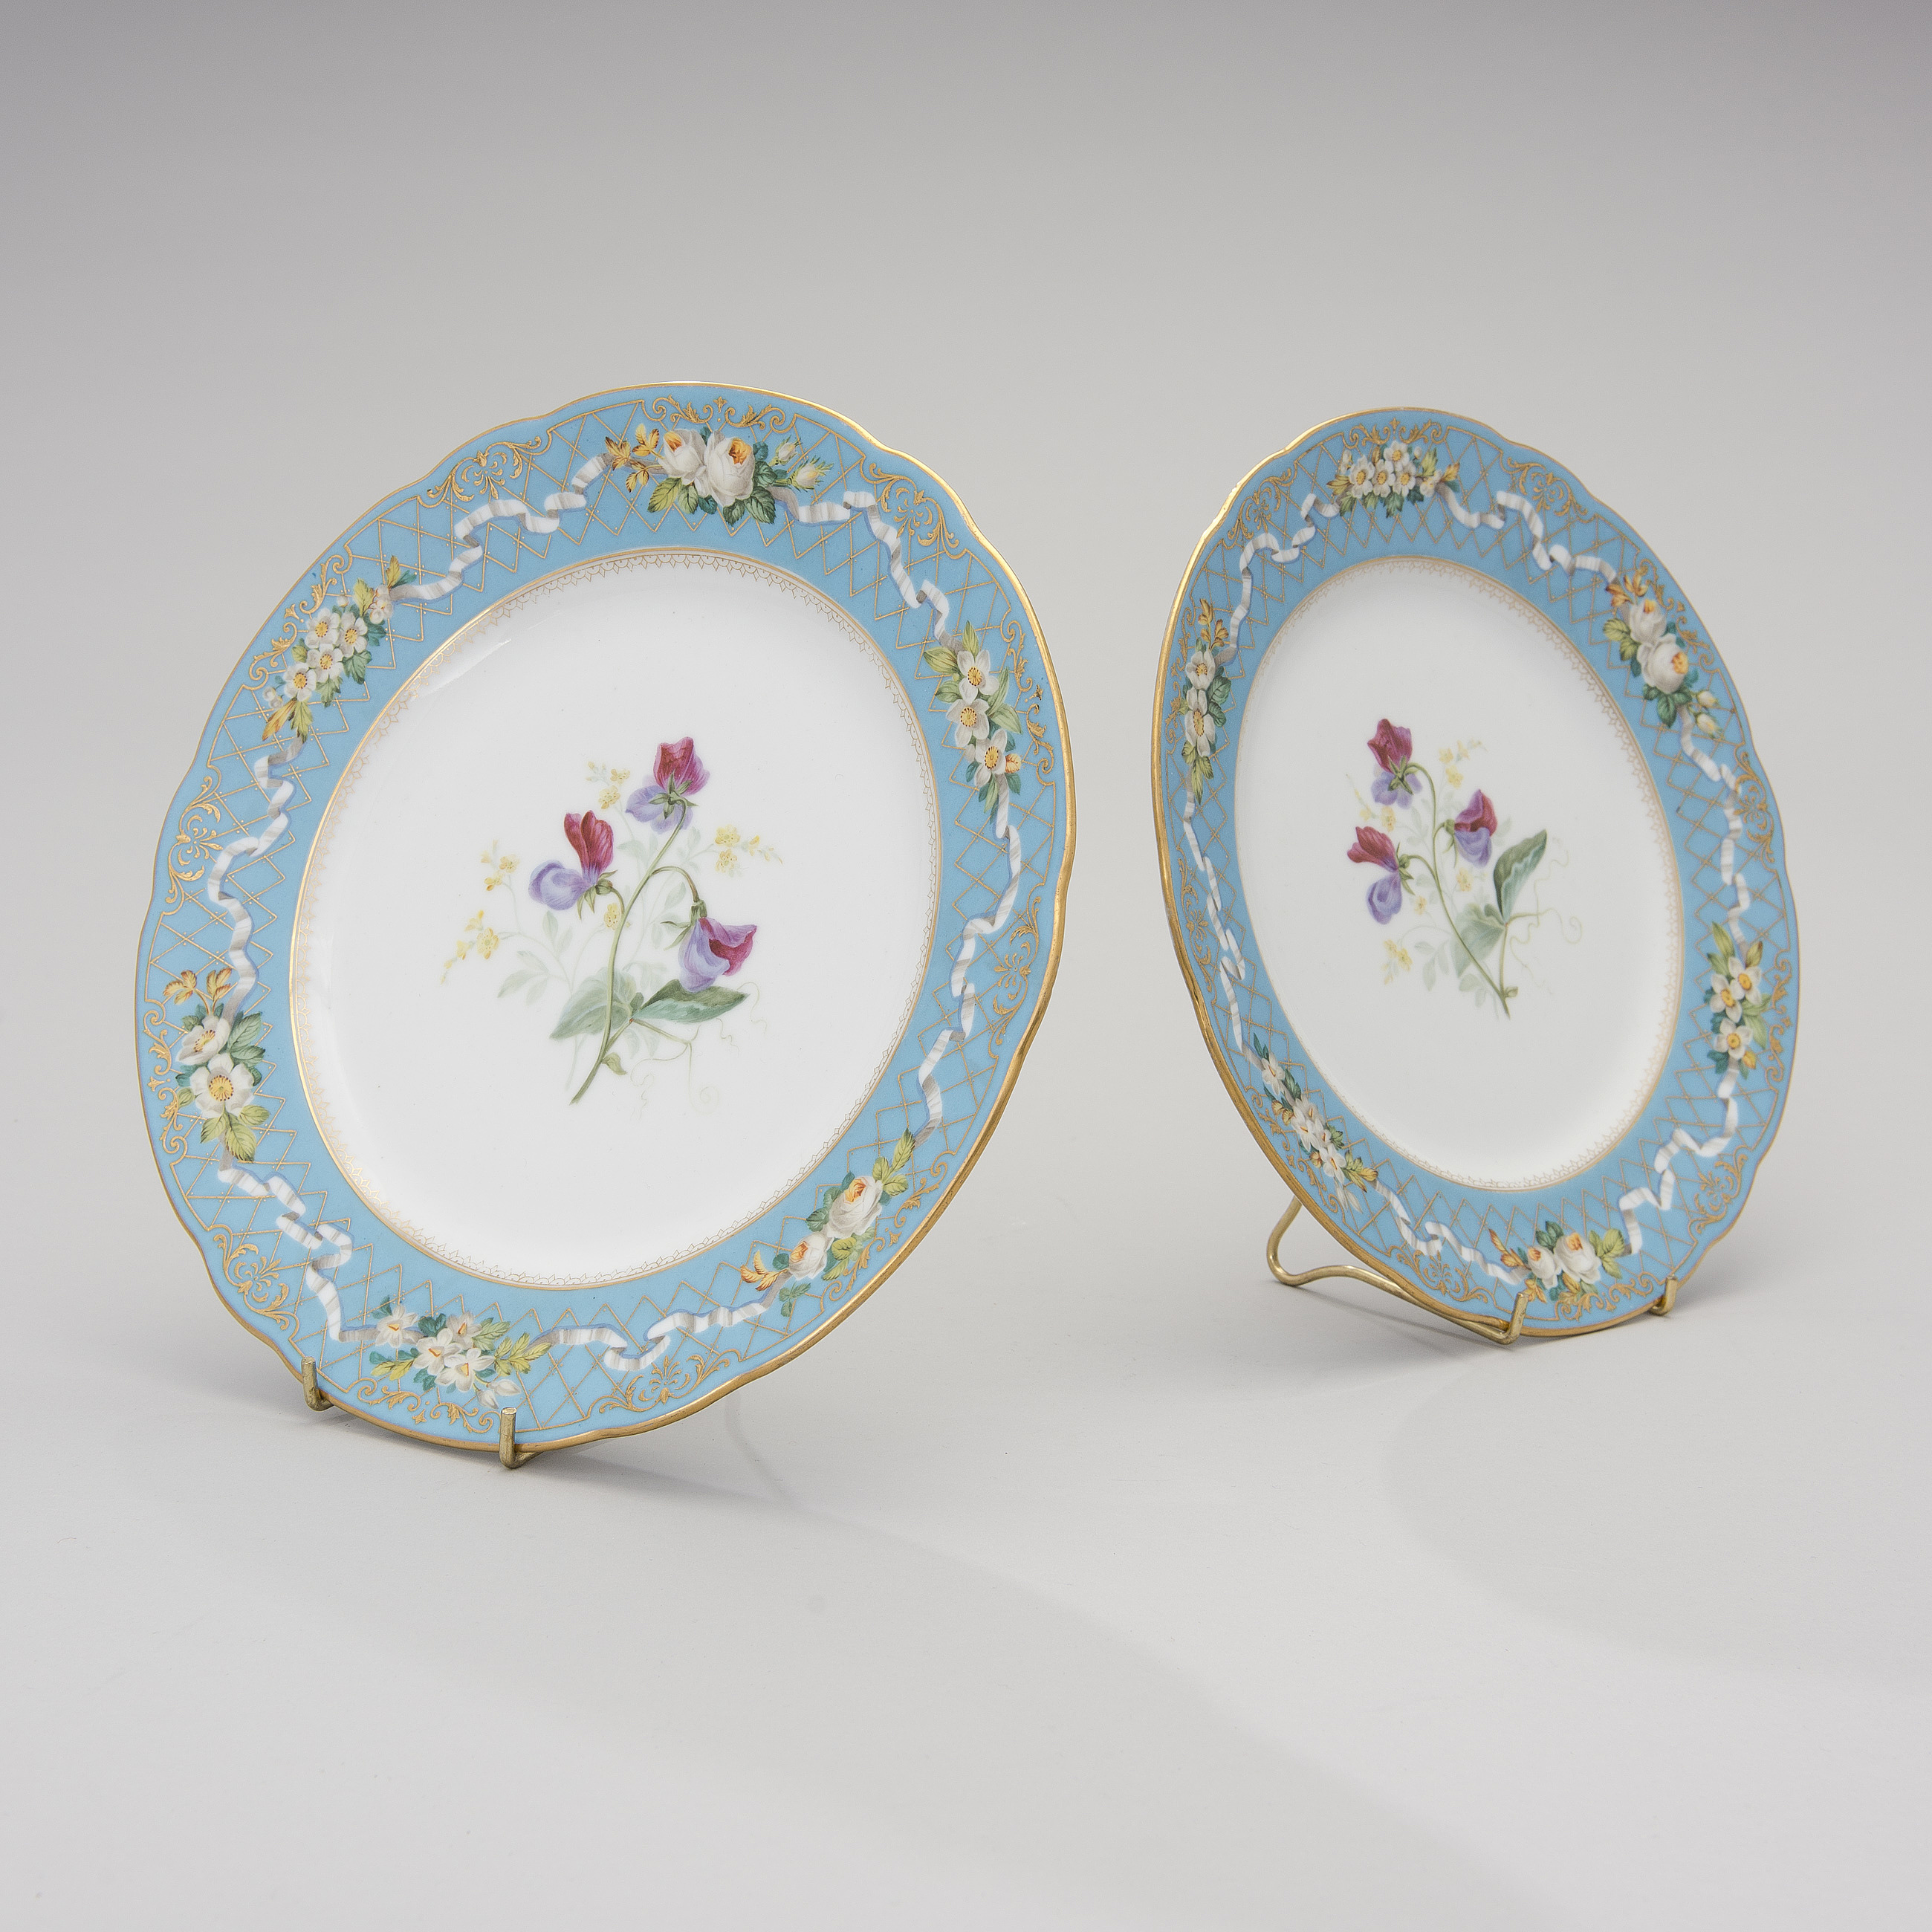 A PAIR OF RUSSIAN IMPERIAL PORCELAIN FACTORY PLATES Alexander II 1855-81. - Bukowskis  sc 1 st  Bukowskis & A PAIR OF RUSSIAN IMPERIAL PORCELAIN FACTORY PLATES Alexander II ...